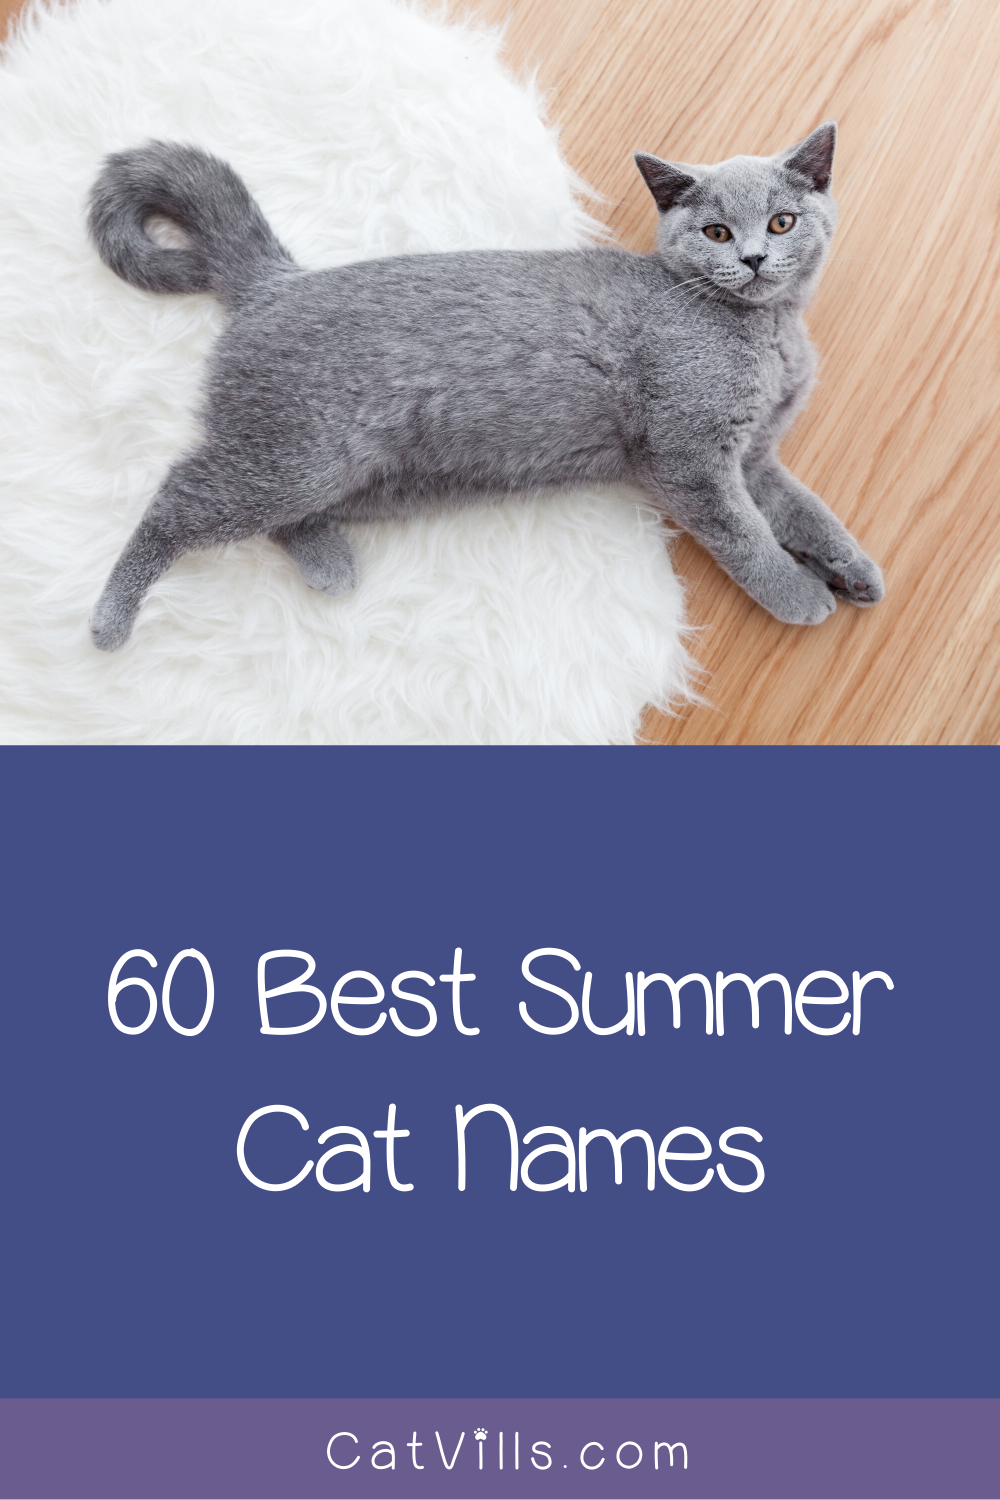 60 Summer Cat Names That Will Make You Feel Warm Fuzzy In 2020 Cat Names Cats